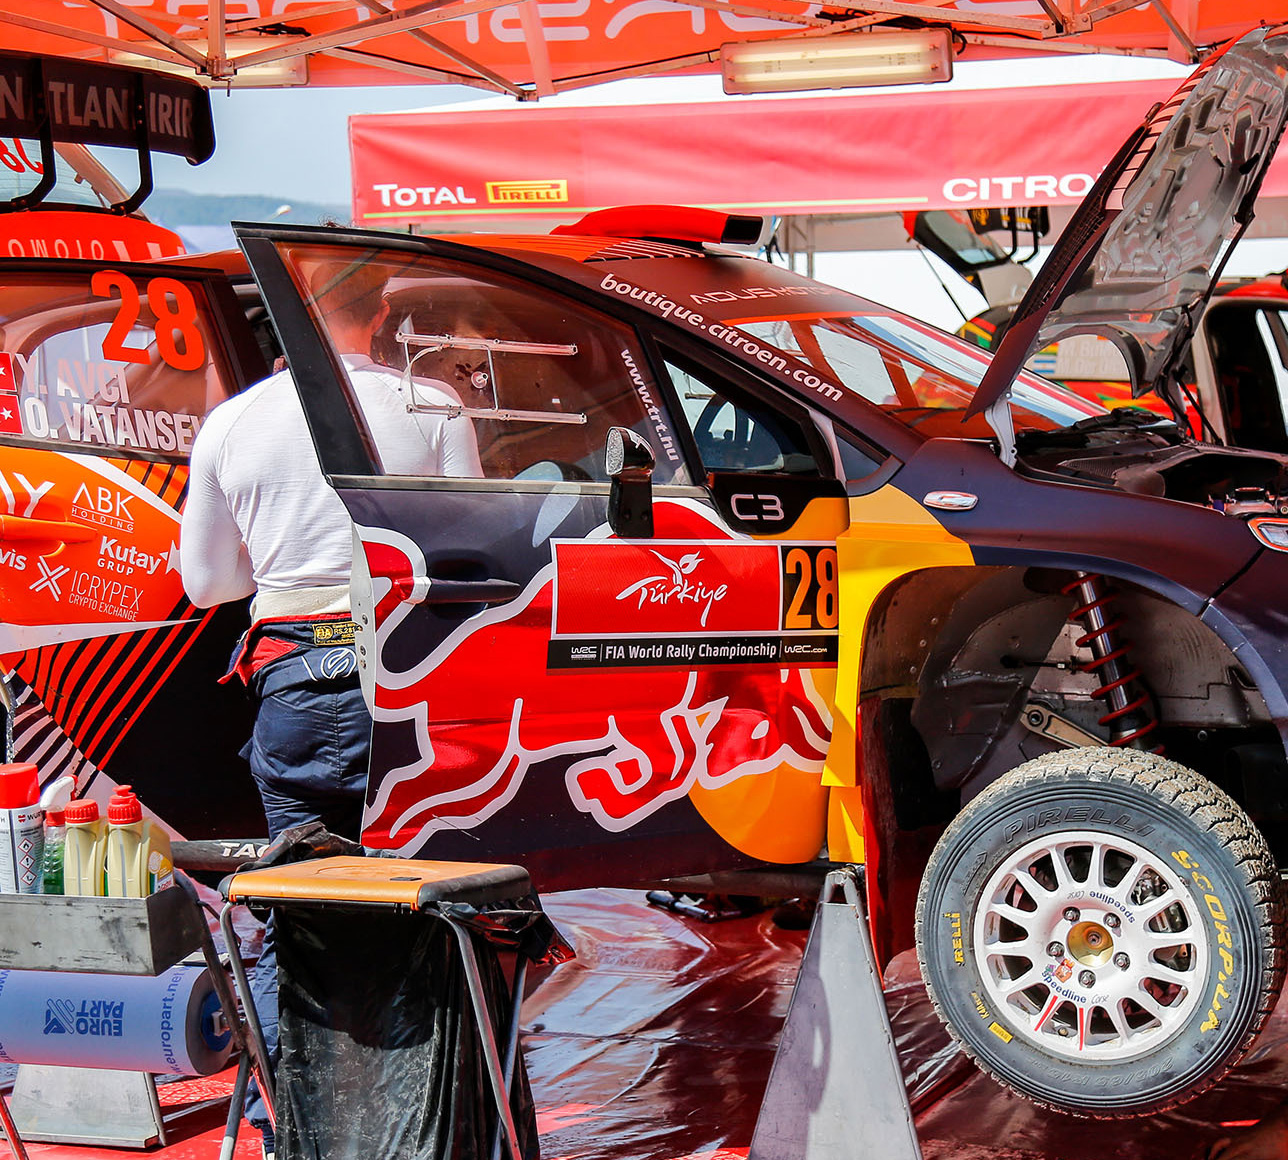 Rally Car Citroen C3 at service area